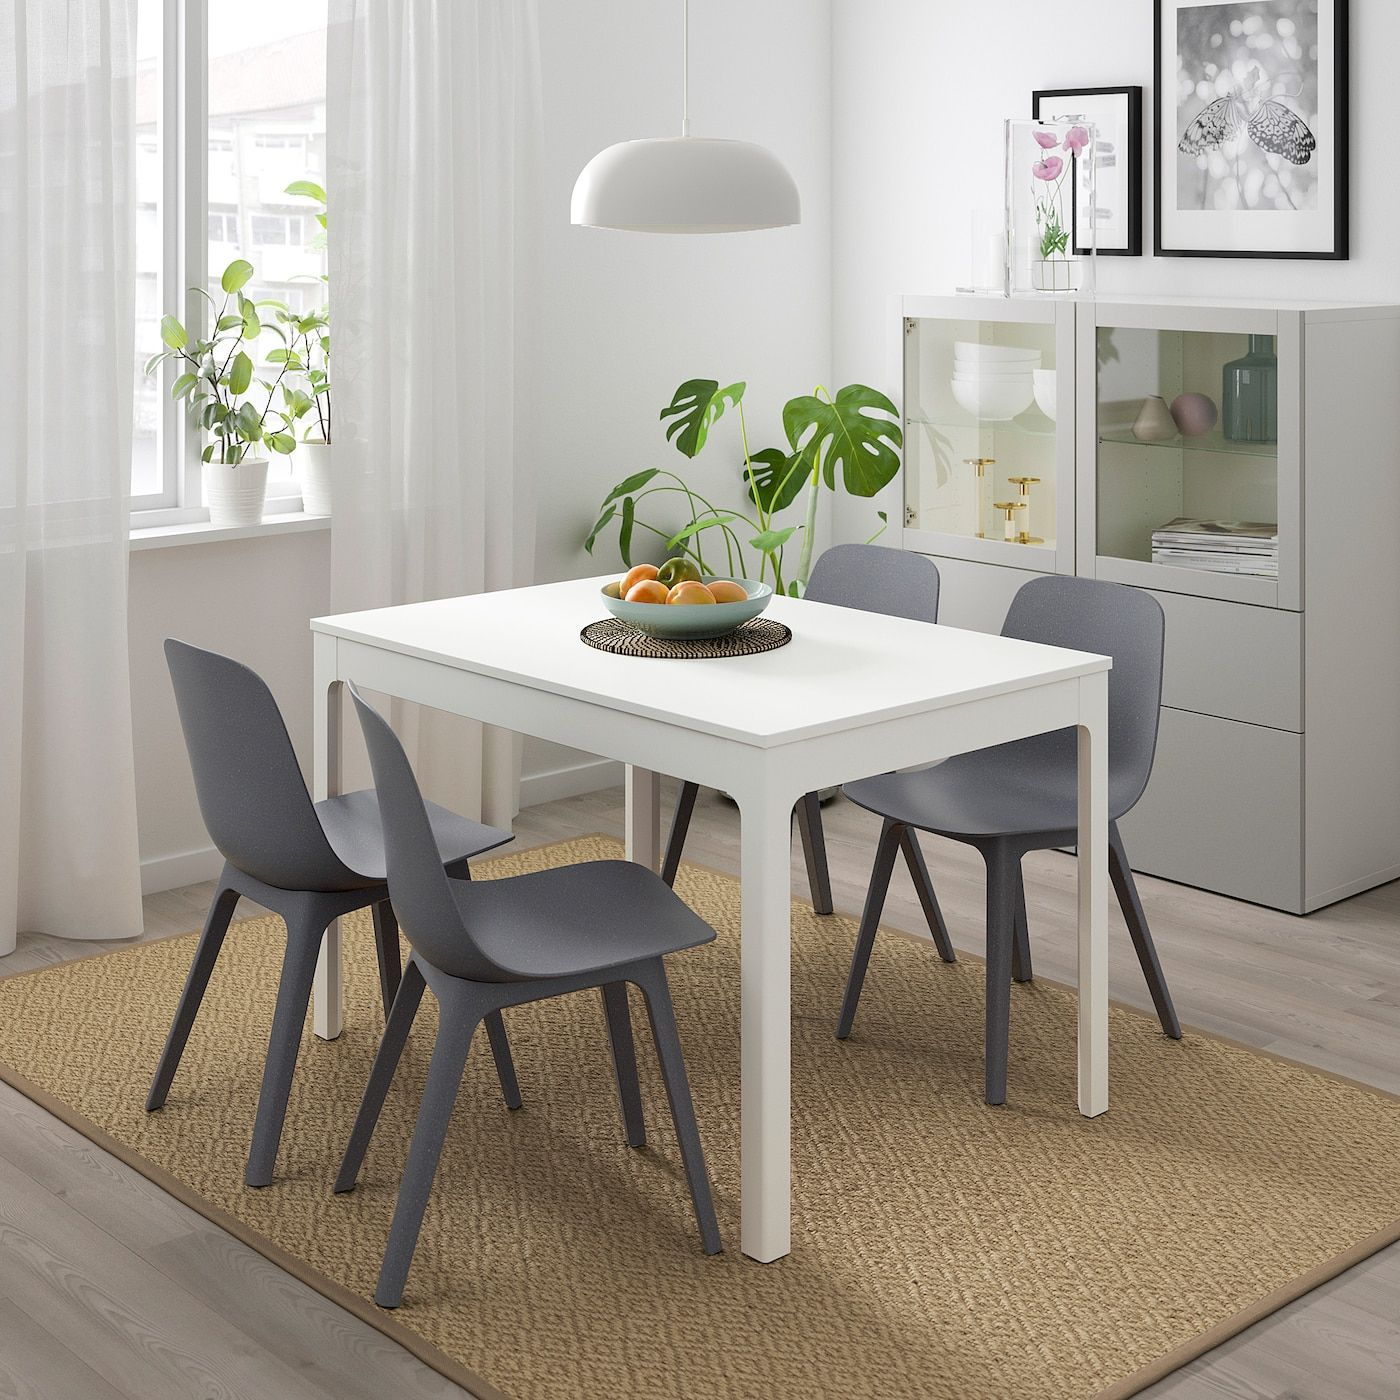 EKEDALEN / ODGER Table and 4 chairs white, blue IKEA